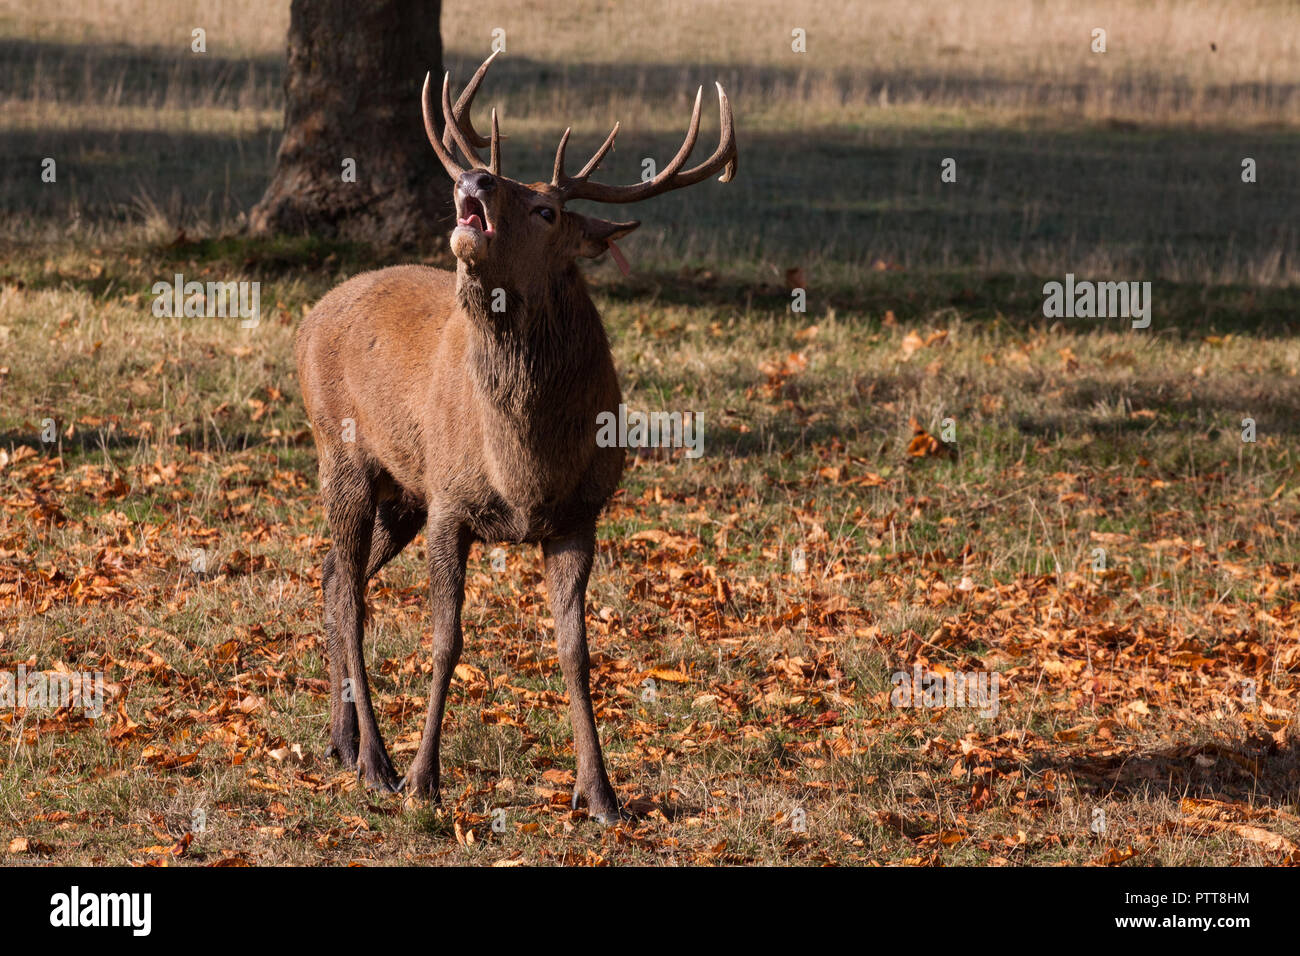 Windsor, UK. 10th October, 2018. A red stag brought to Windsor Great Park from the Balmoral Estate throws back its head to bellow on a warm autumn morning during the rutting season. There is a herd of around 500 red deer within the deer park enclosure in Windsor Great Park, all descended from forty hinds and two stags introduced from Balmoral Estate in 1979 by the Duke of Edinburgh. Credit: Mark Kerrison/Alamy Live News - Stock Image